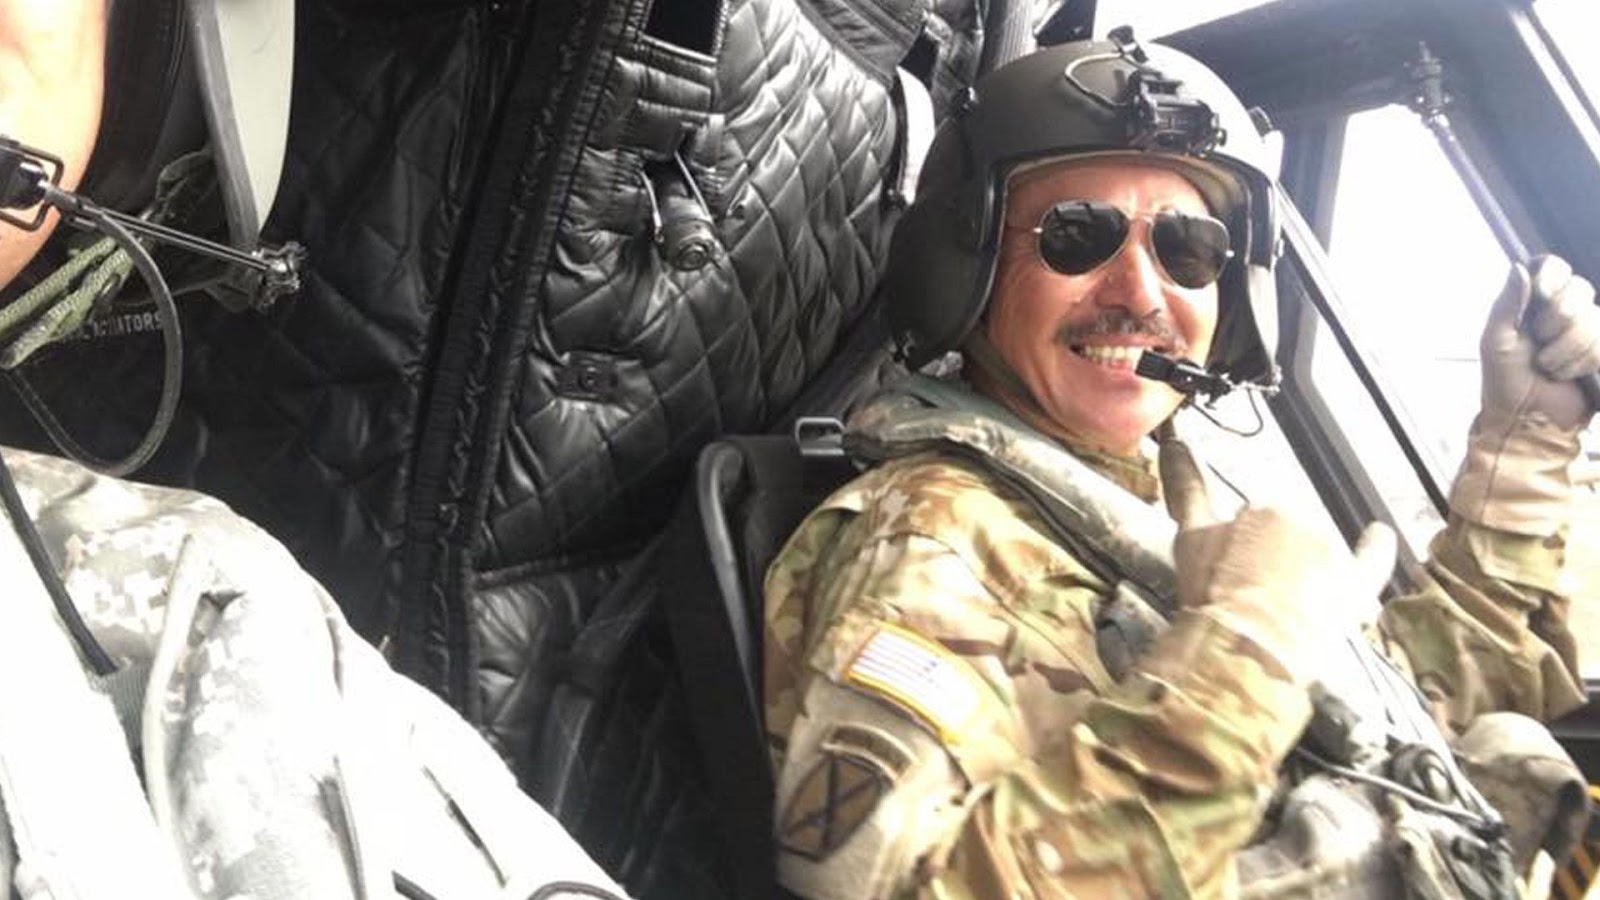 Indiana white county chalmers - A Long Time Hawaii Army National Guard Helicopter Pilot From Kapolei Died In A Helicopter Crash In Rural Northern Indiana Tuesday While Helping To Install